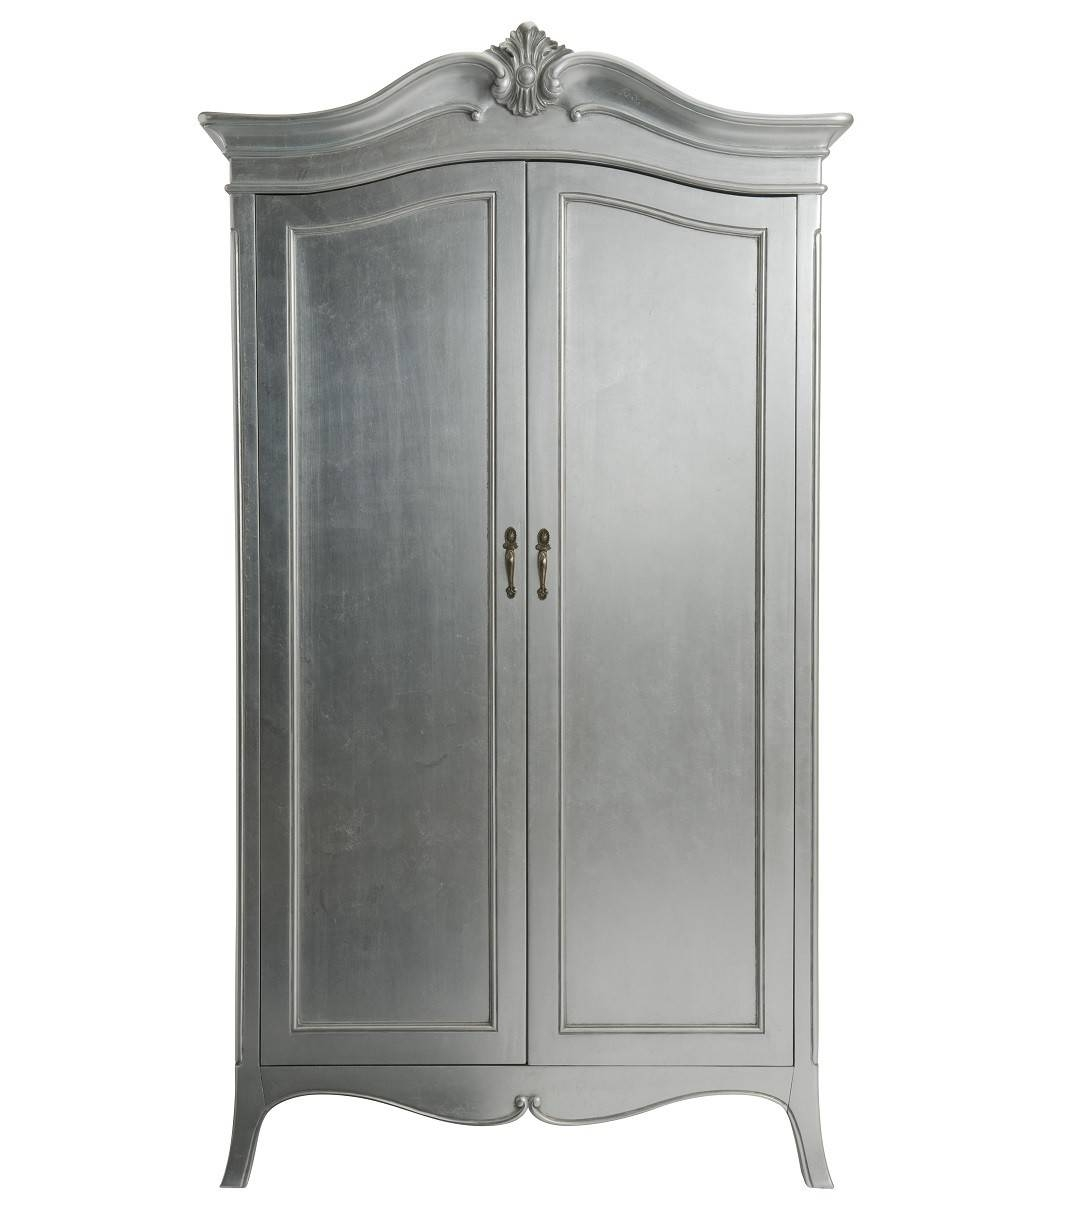 Louis French Silver Leaf 2 Door Double Wardrobe | Oak Furniture Uk in Black French Wardrobes (Image 14 of 15)